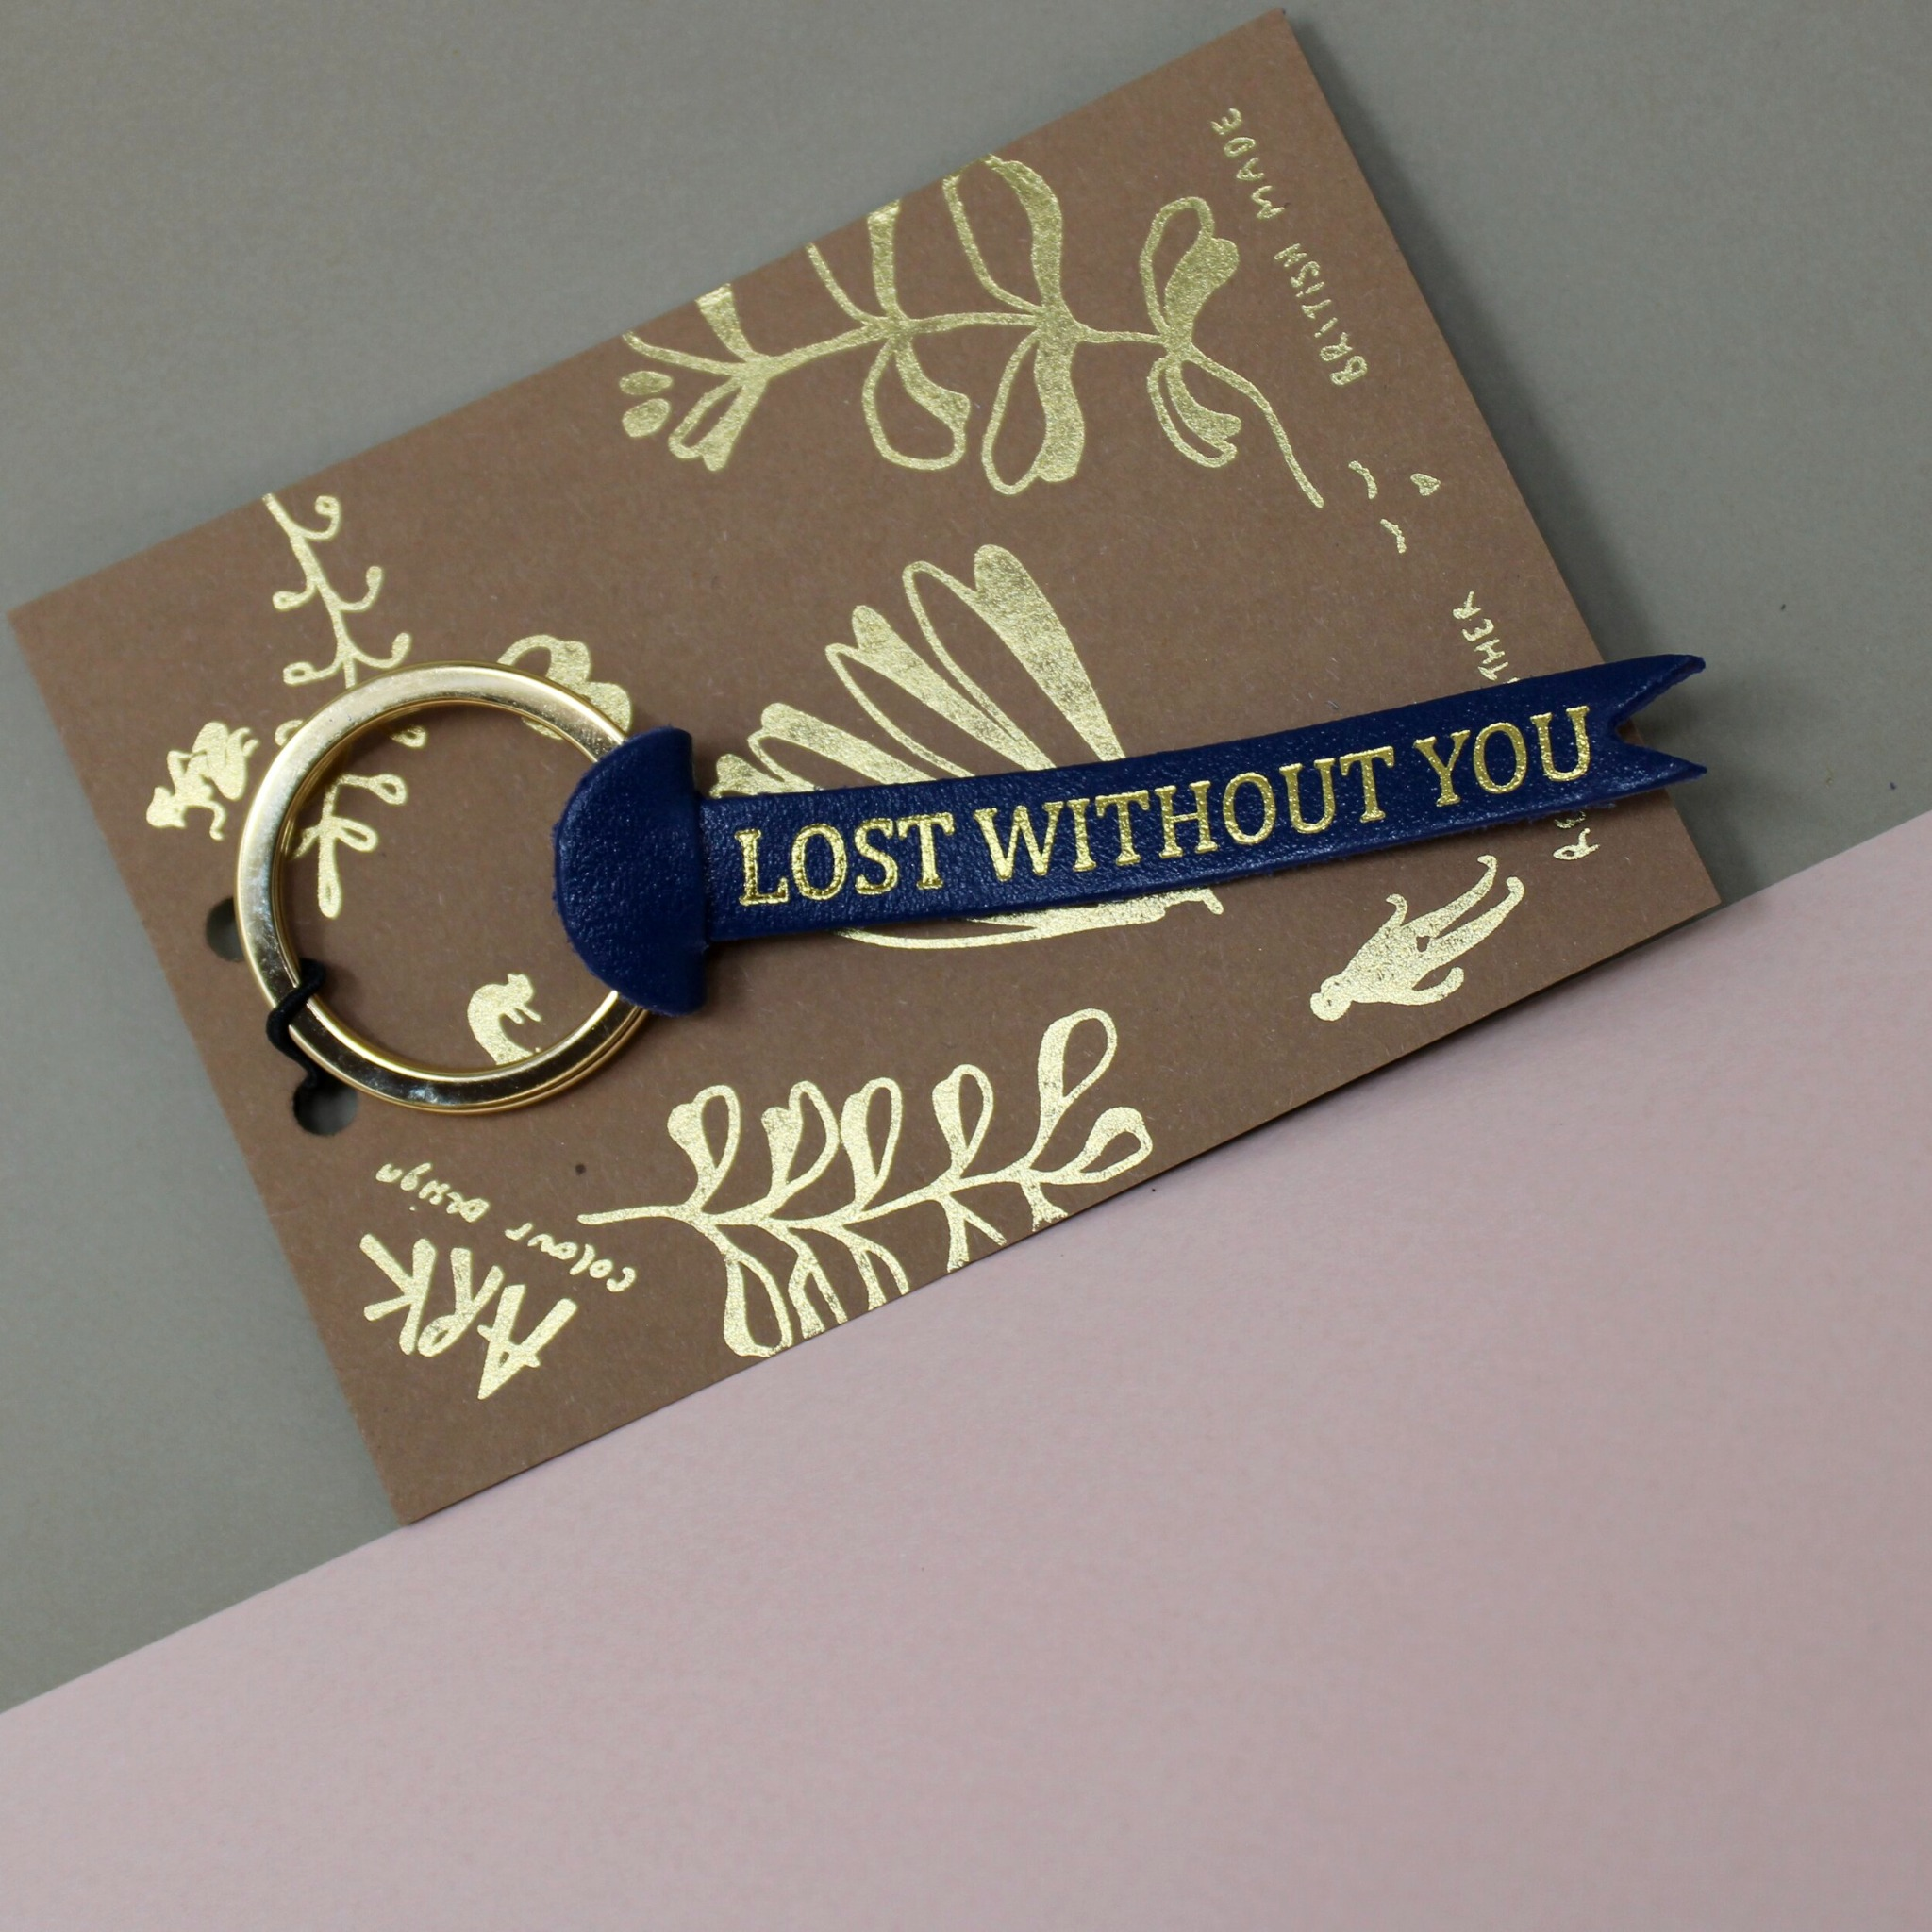 Lost without you keyring - Blue